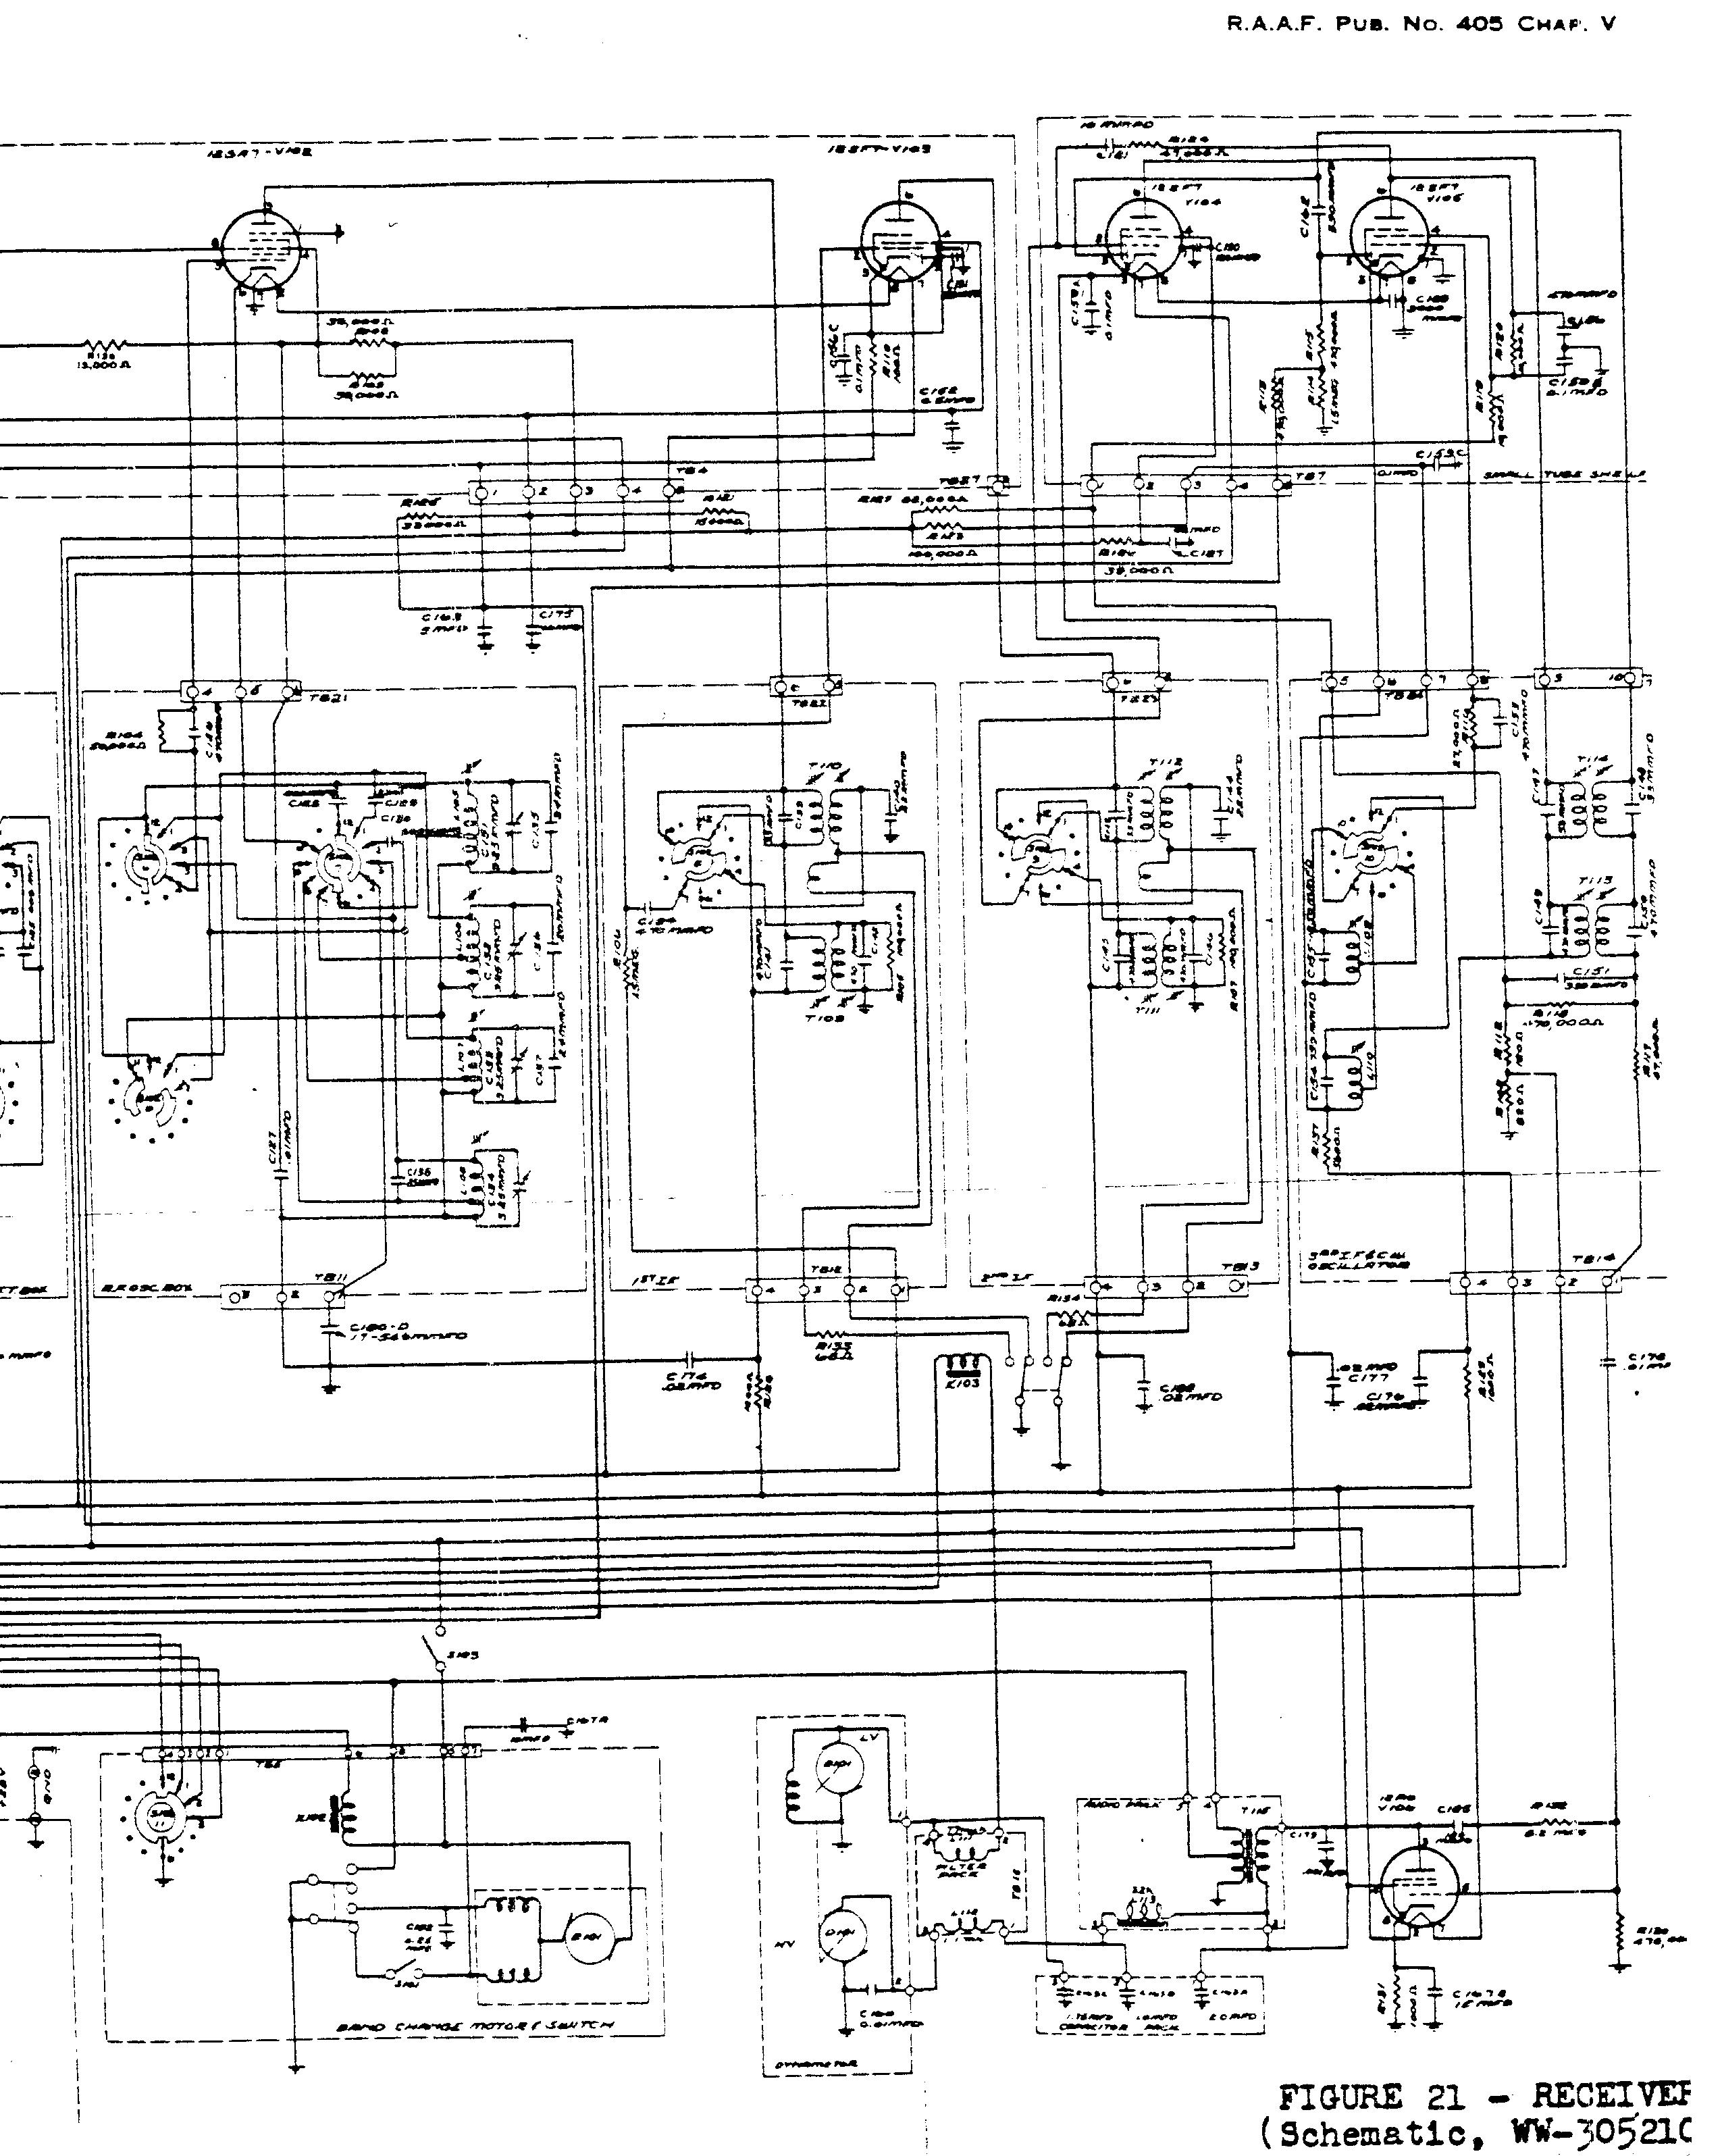 Reading Hvac Electrical Diagrams furthermore Arb as well Wiring Diagrams For Aircraft additionally 2012 07 01 archive moreover 2013 08 01 archive. on read aircraft wiring diagram manual